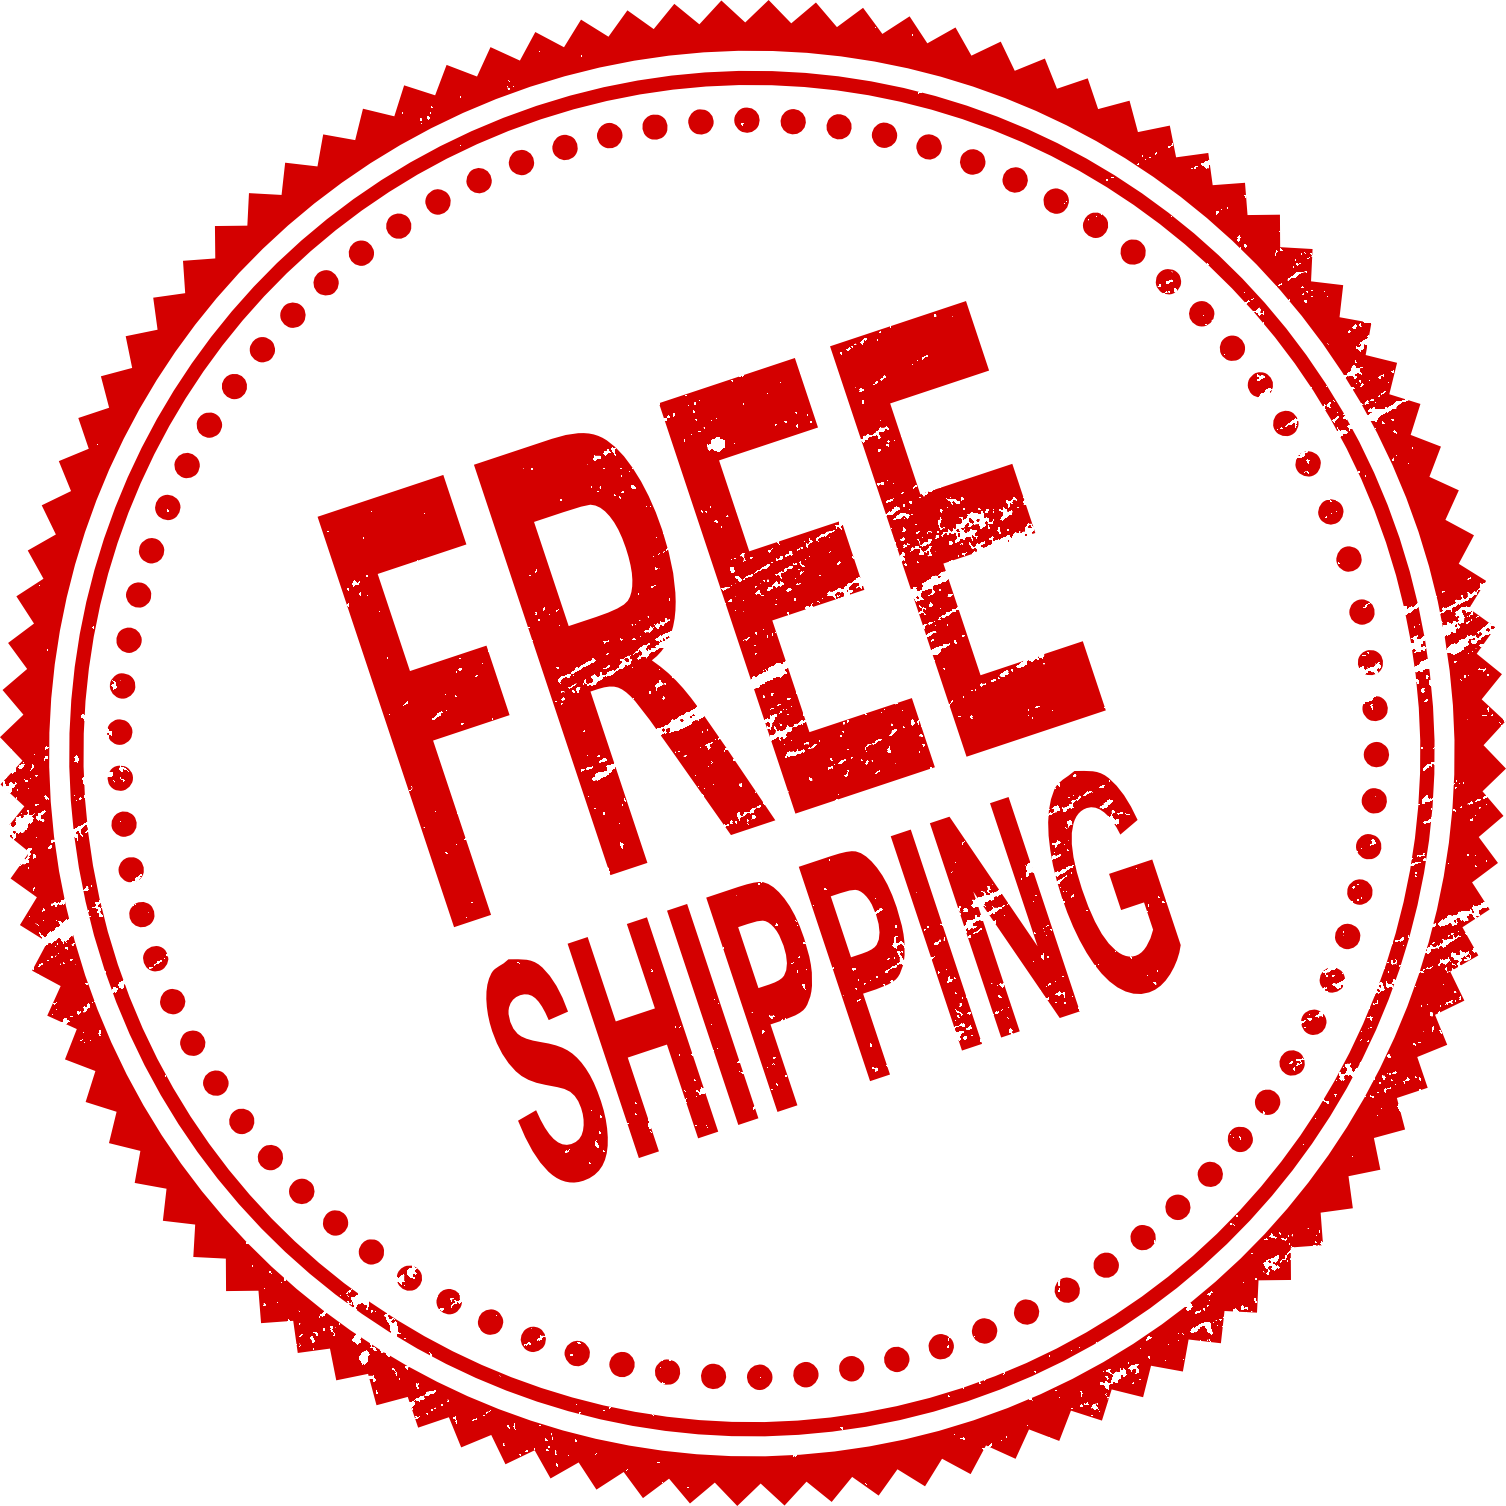 Free shipping png transparent. Stamp clipart fragile